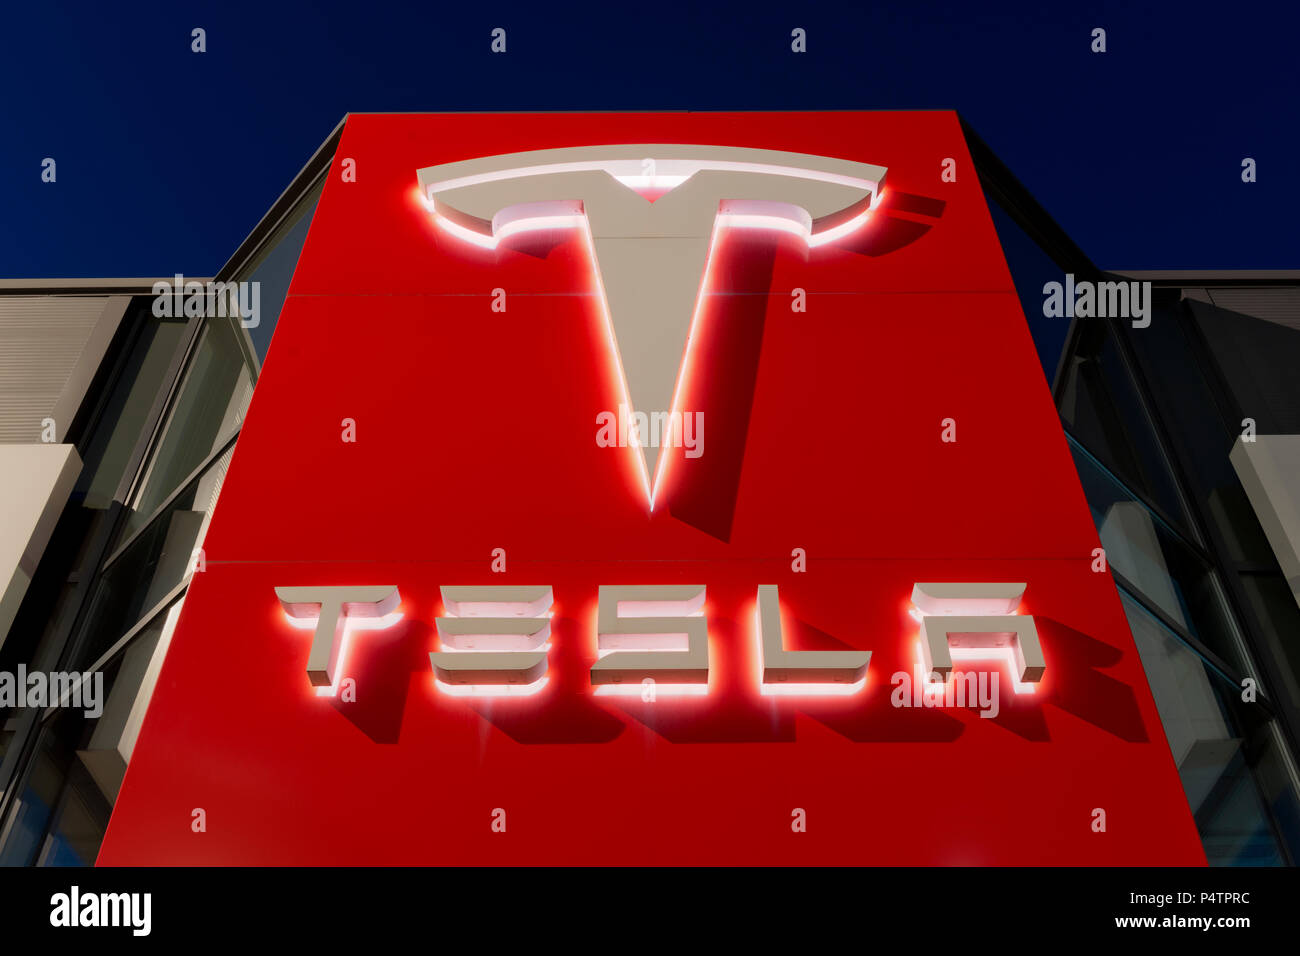 Signage for the Tesla motor company at nigtht outside one of its showrooms in South Manchester, UK. - Stock Image